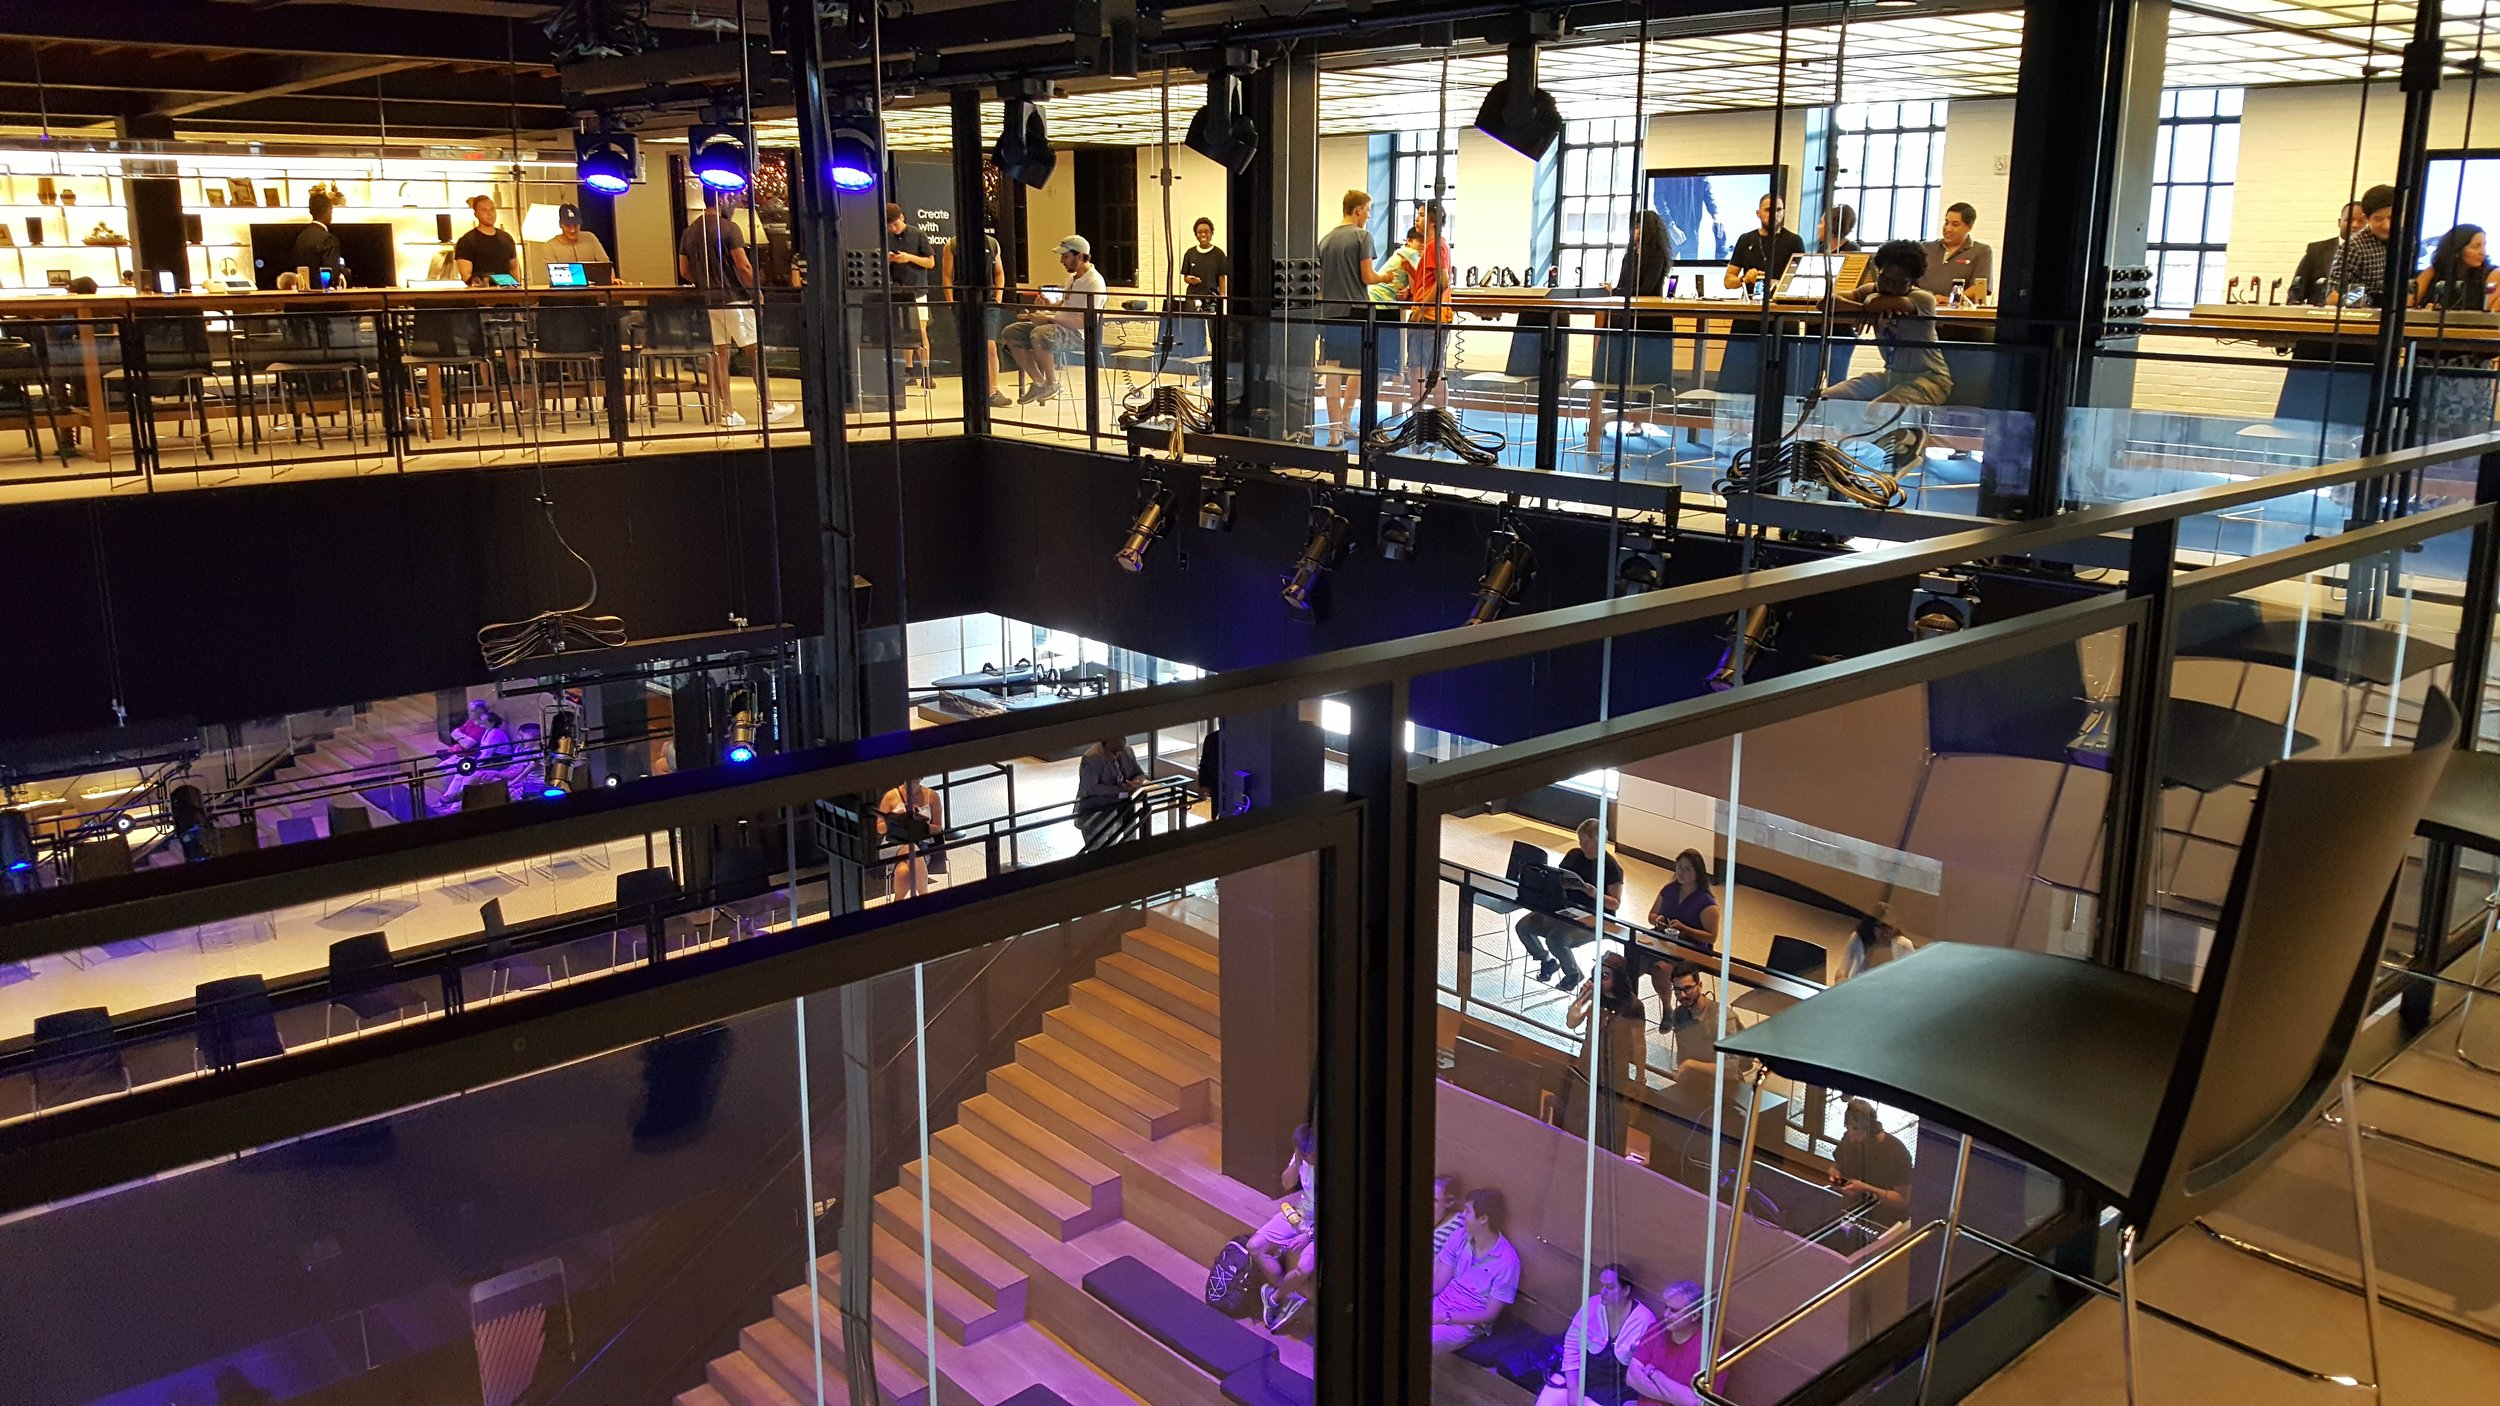 Samsung's 837 store in Manhattan's Meatpacking District provides tech support along with a dazzling display of technology-based entertainment and experiences.